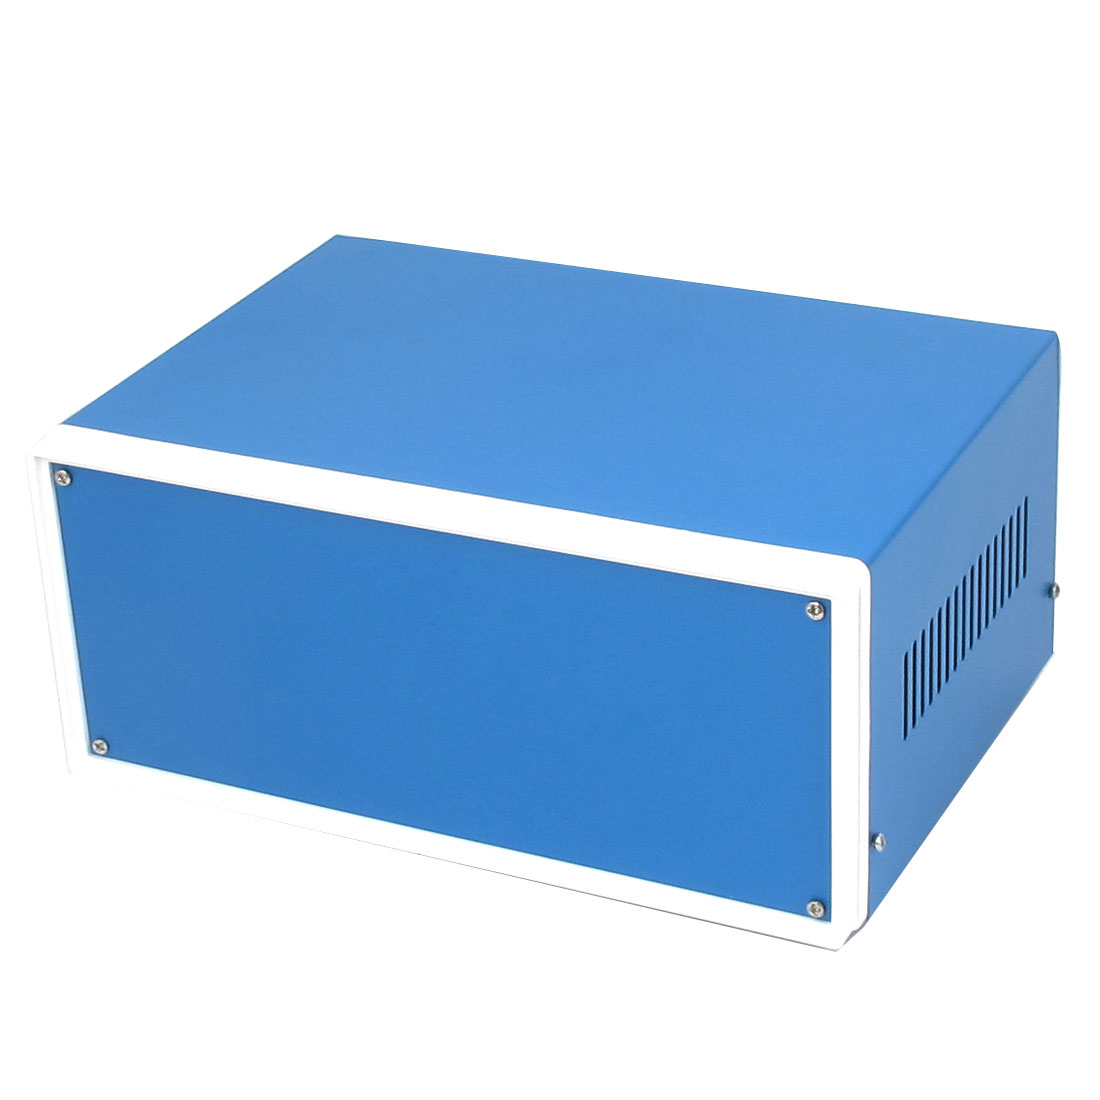 250mmx190mmx110mm Aluminium Surface Mounting Electrical Switch Protector Junction Enclosure Box Case